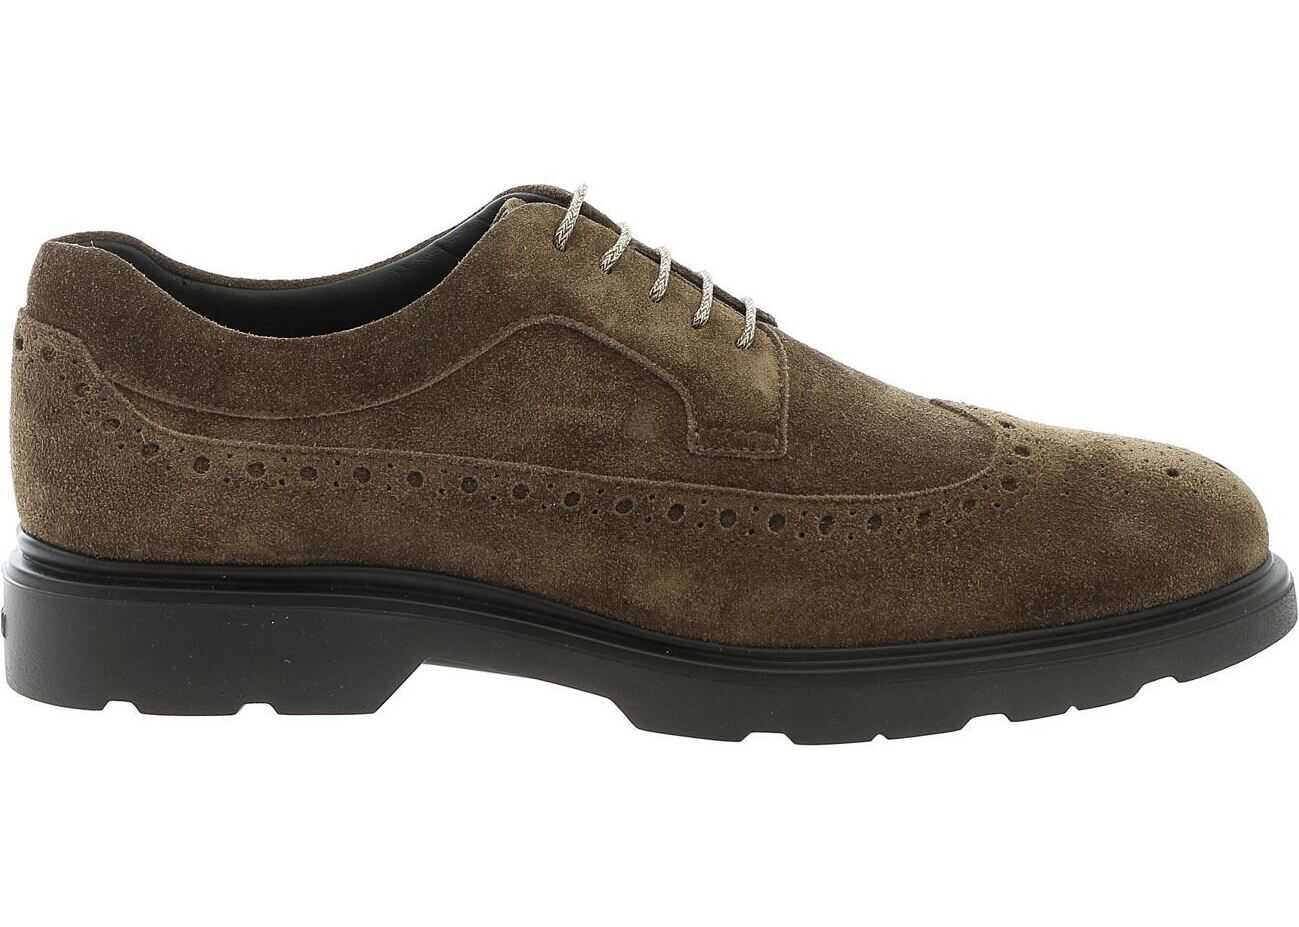 H393 Derby Shoes In Mud Color thumbnail